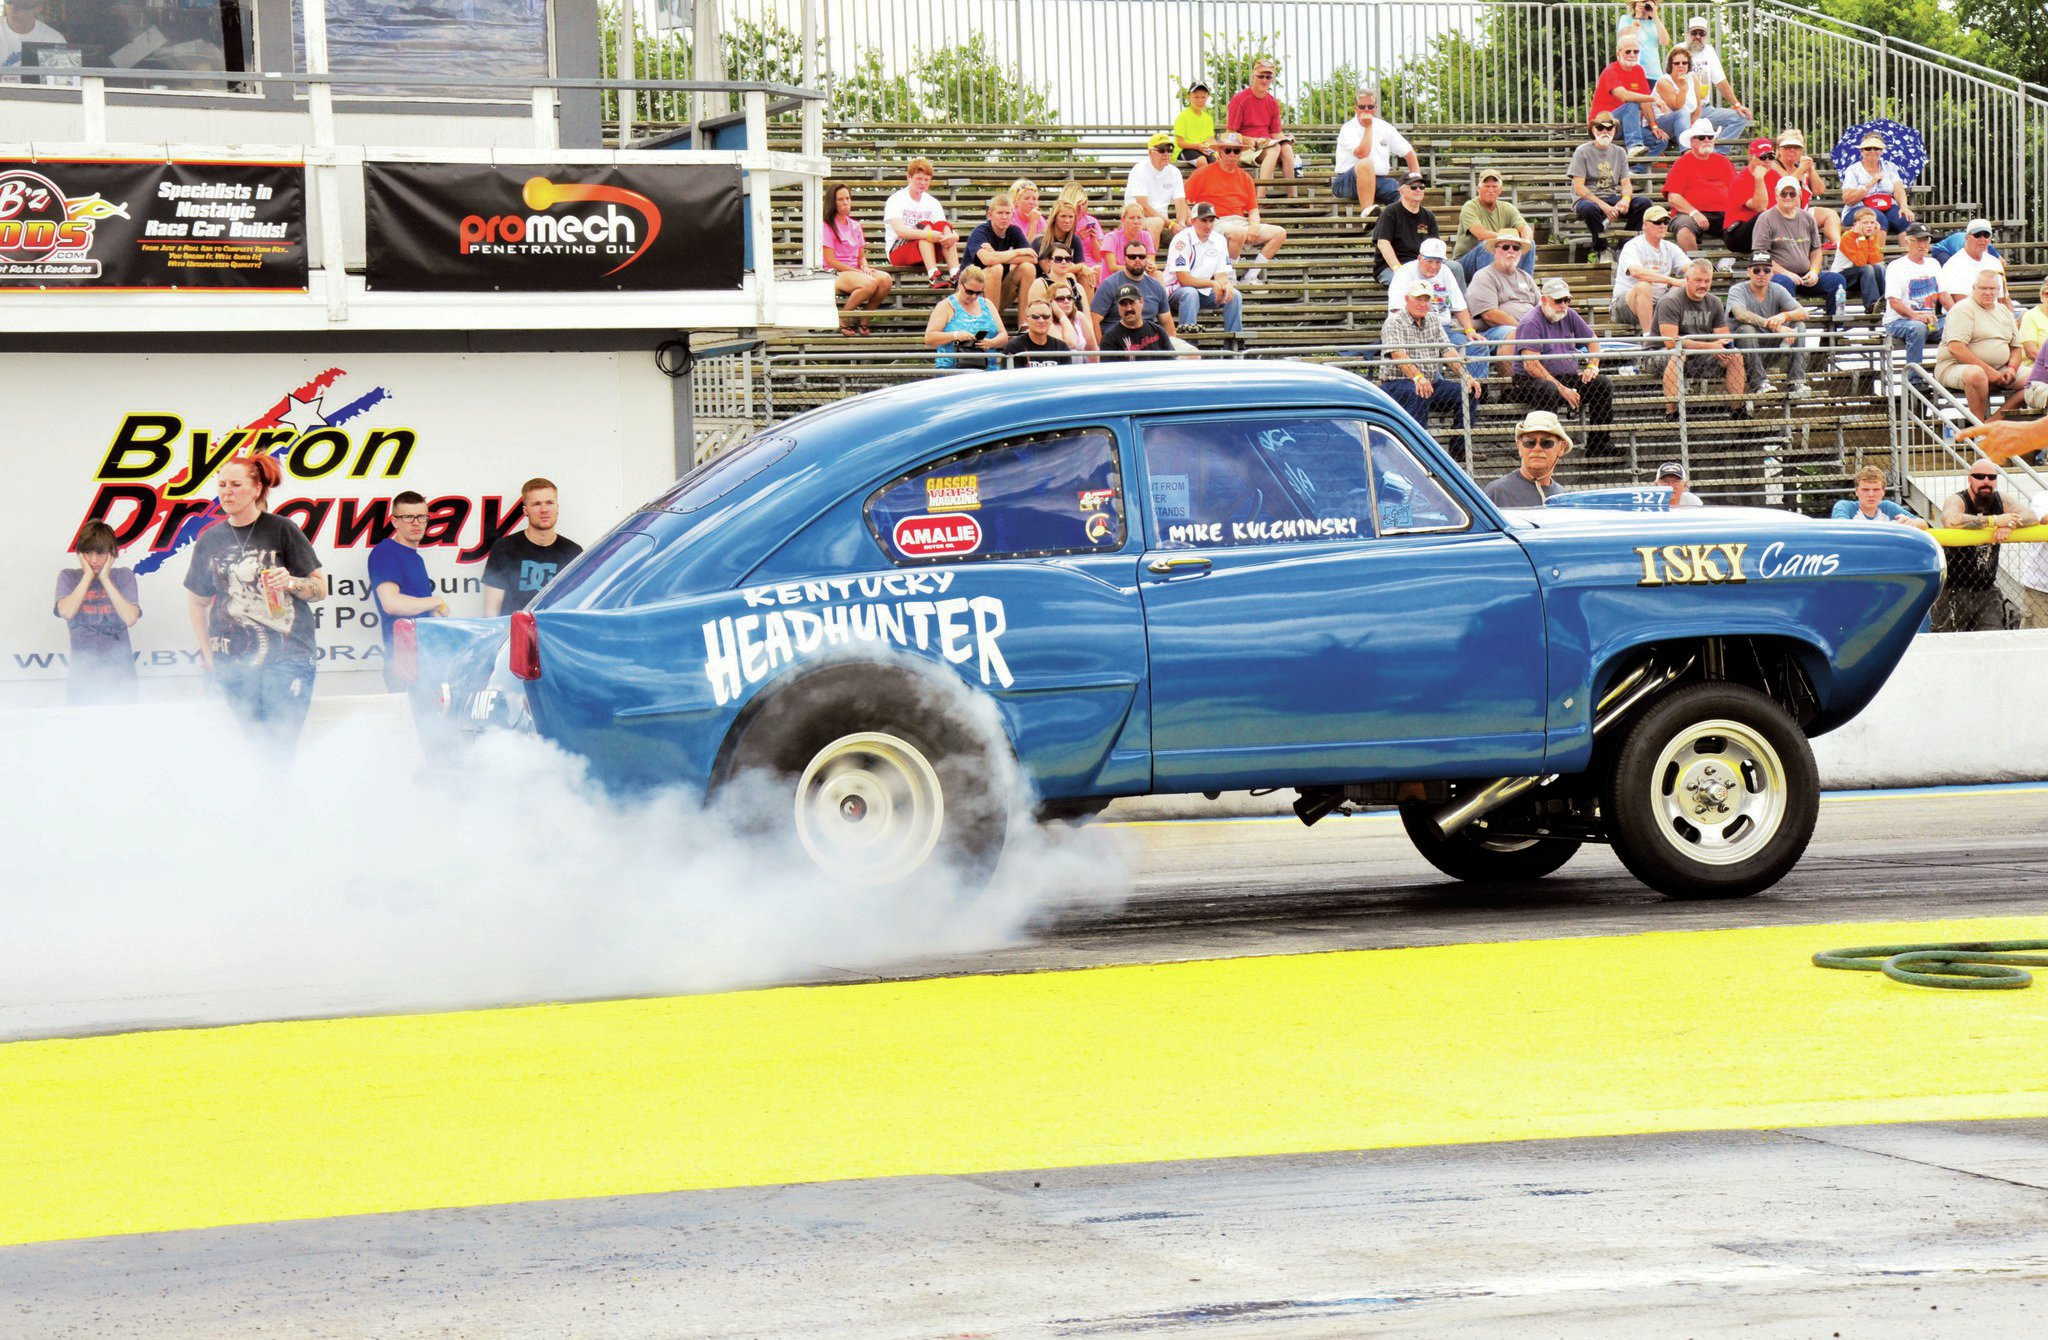 "The Kentucky Headhunter '51 Henry J gasser of Mike Kulchinski had no problem warming up the tires at Byron Dragway, the ""House of Hook."" Mike's blue Henry J is powered by a 327 small-block running an Isky cam. No doubt the Henry J's loyalty to Isky Cams made Meltdown Drags 2014 guest Ed Iskenderian very happy."